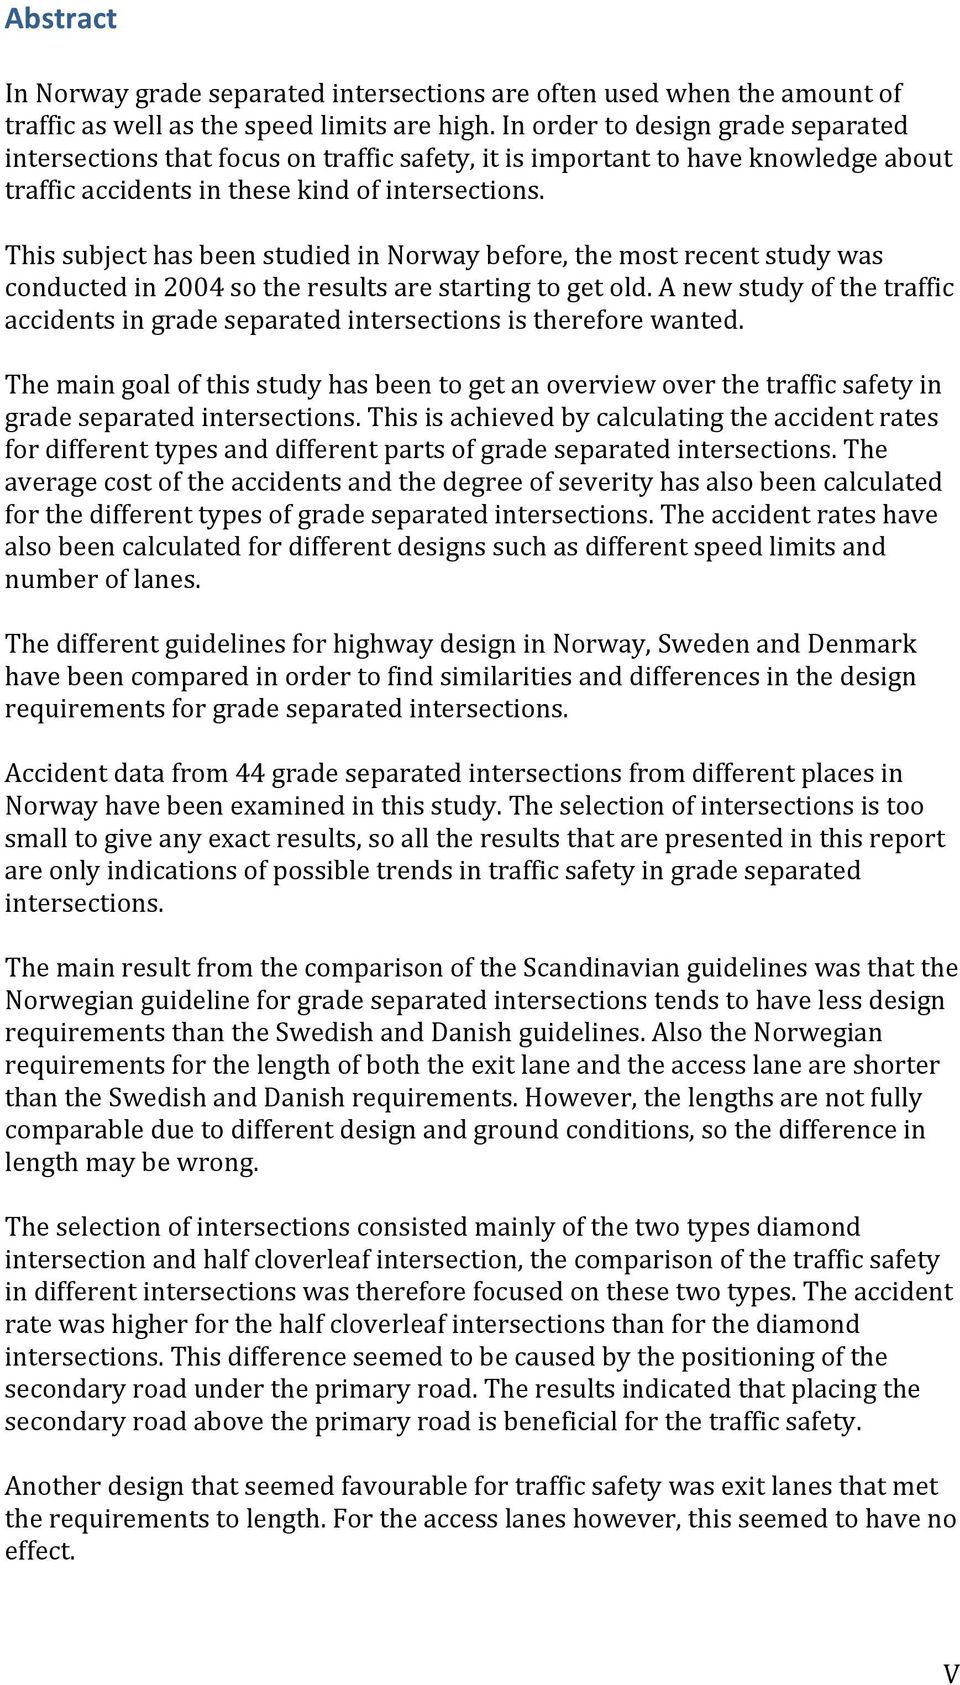 ThissubjecthasbeenstudiedinNorwaybefore,themostrecentstudywas conductedin2004sotheresultsarestartingtogetold.anewstudyofthetraffic accidentsingradeseparatedintersectionsisthereforewanted.